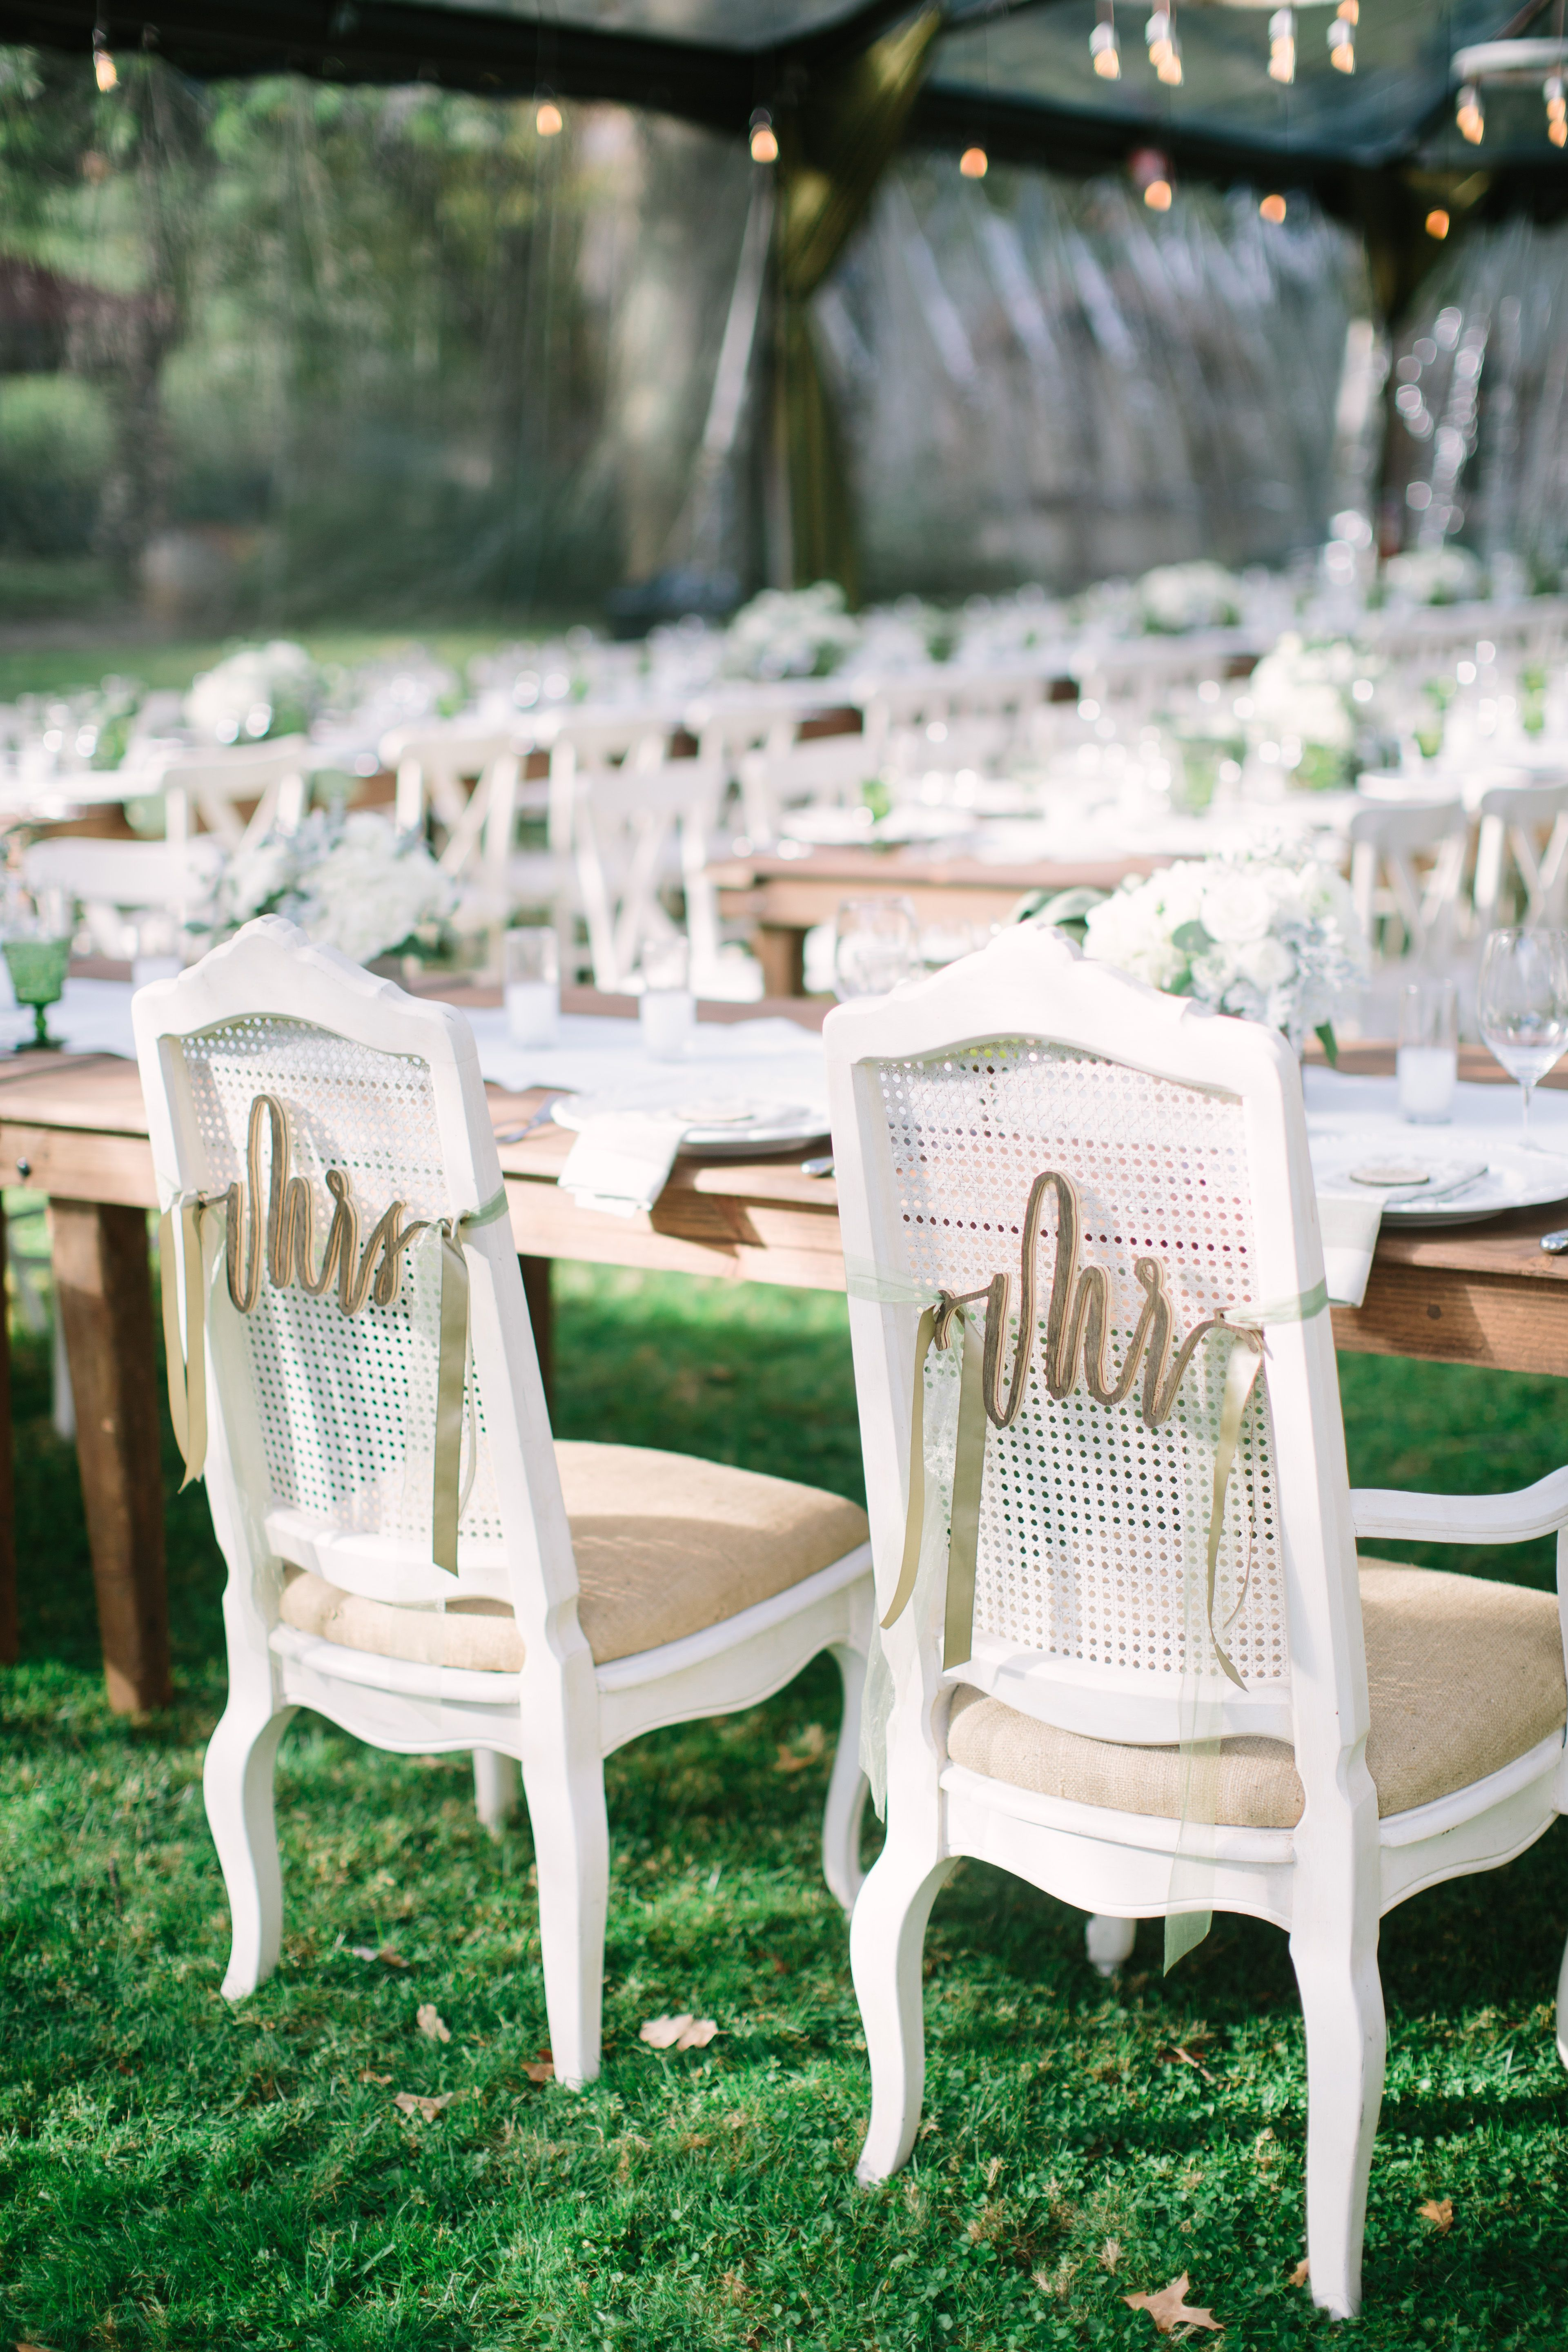 Cursive Mr and Mrs Bride and Groom Chair Decor | Wedding Receptions ...